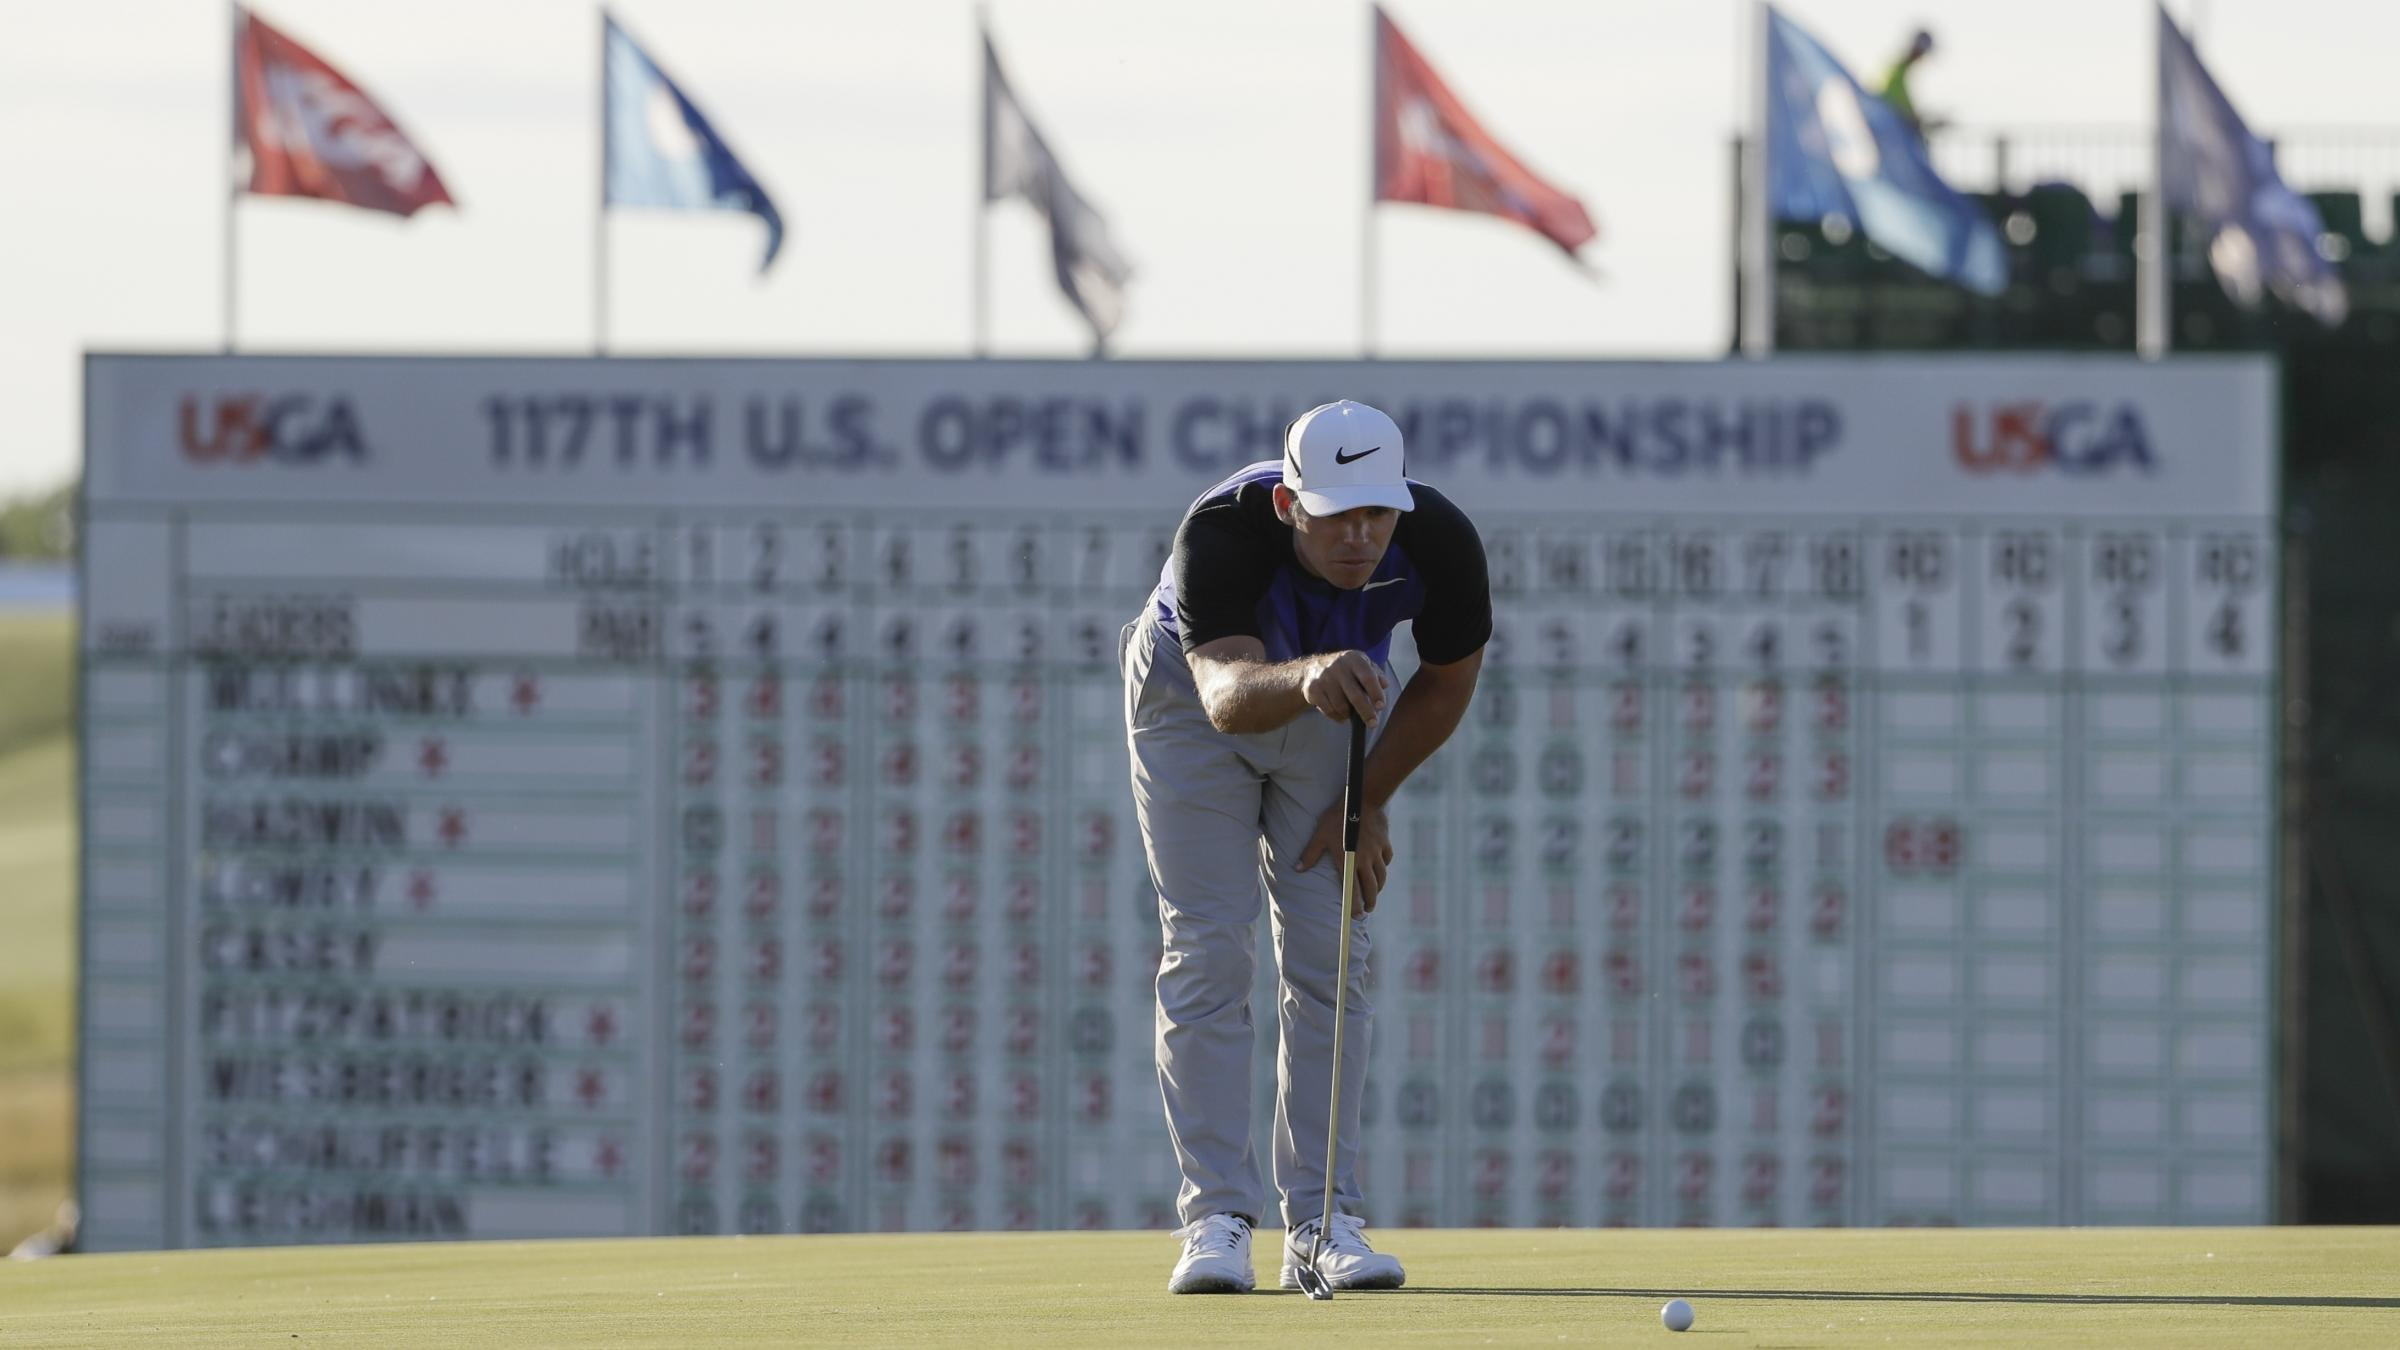 Koepka caps a record week with US Open title